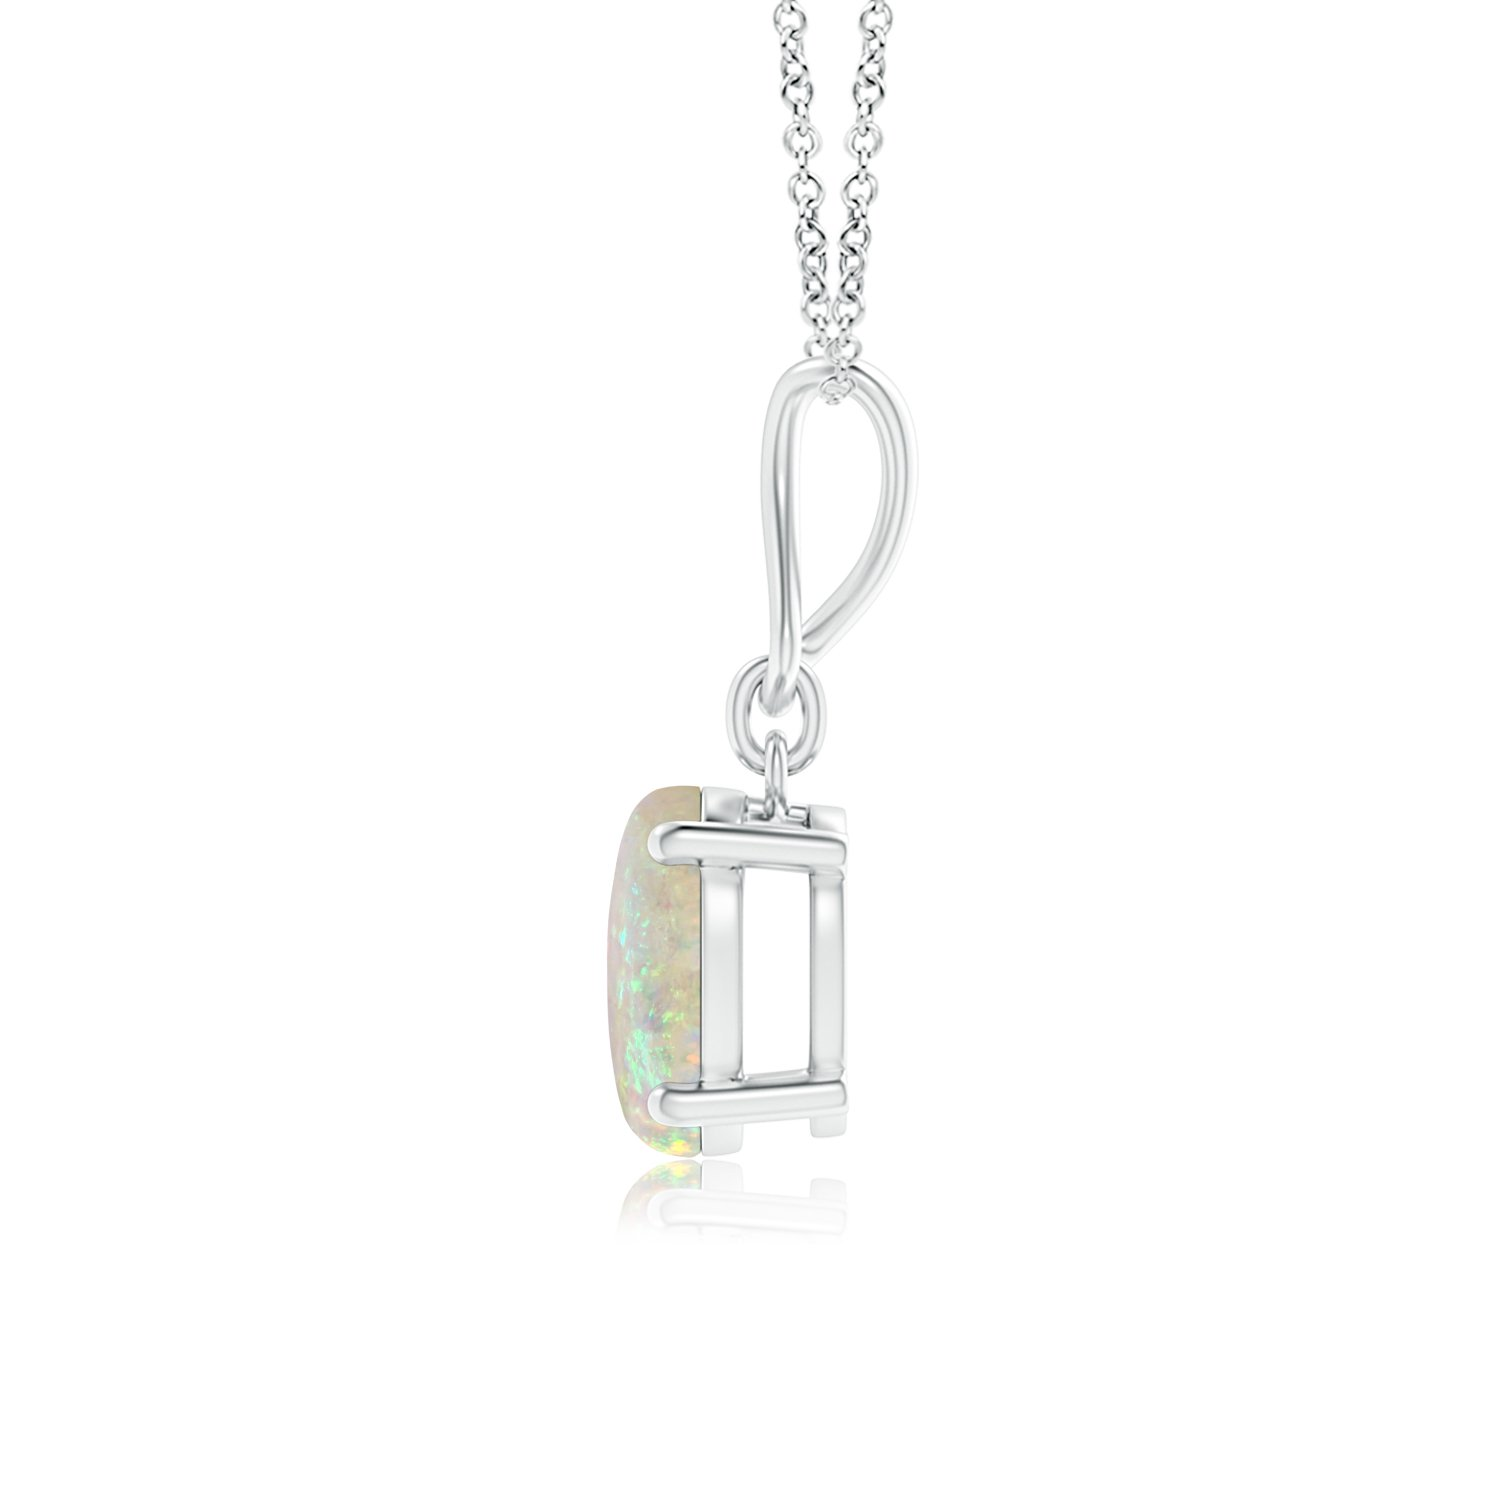 Solitaire Oval Opal Infinity Drop Necklace Pendant Necklace for Women